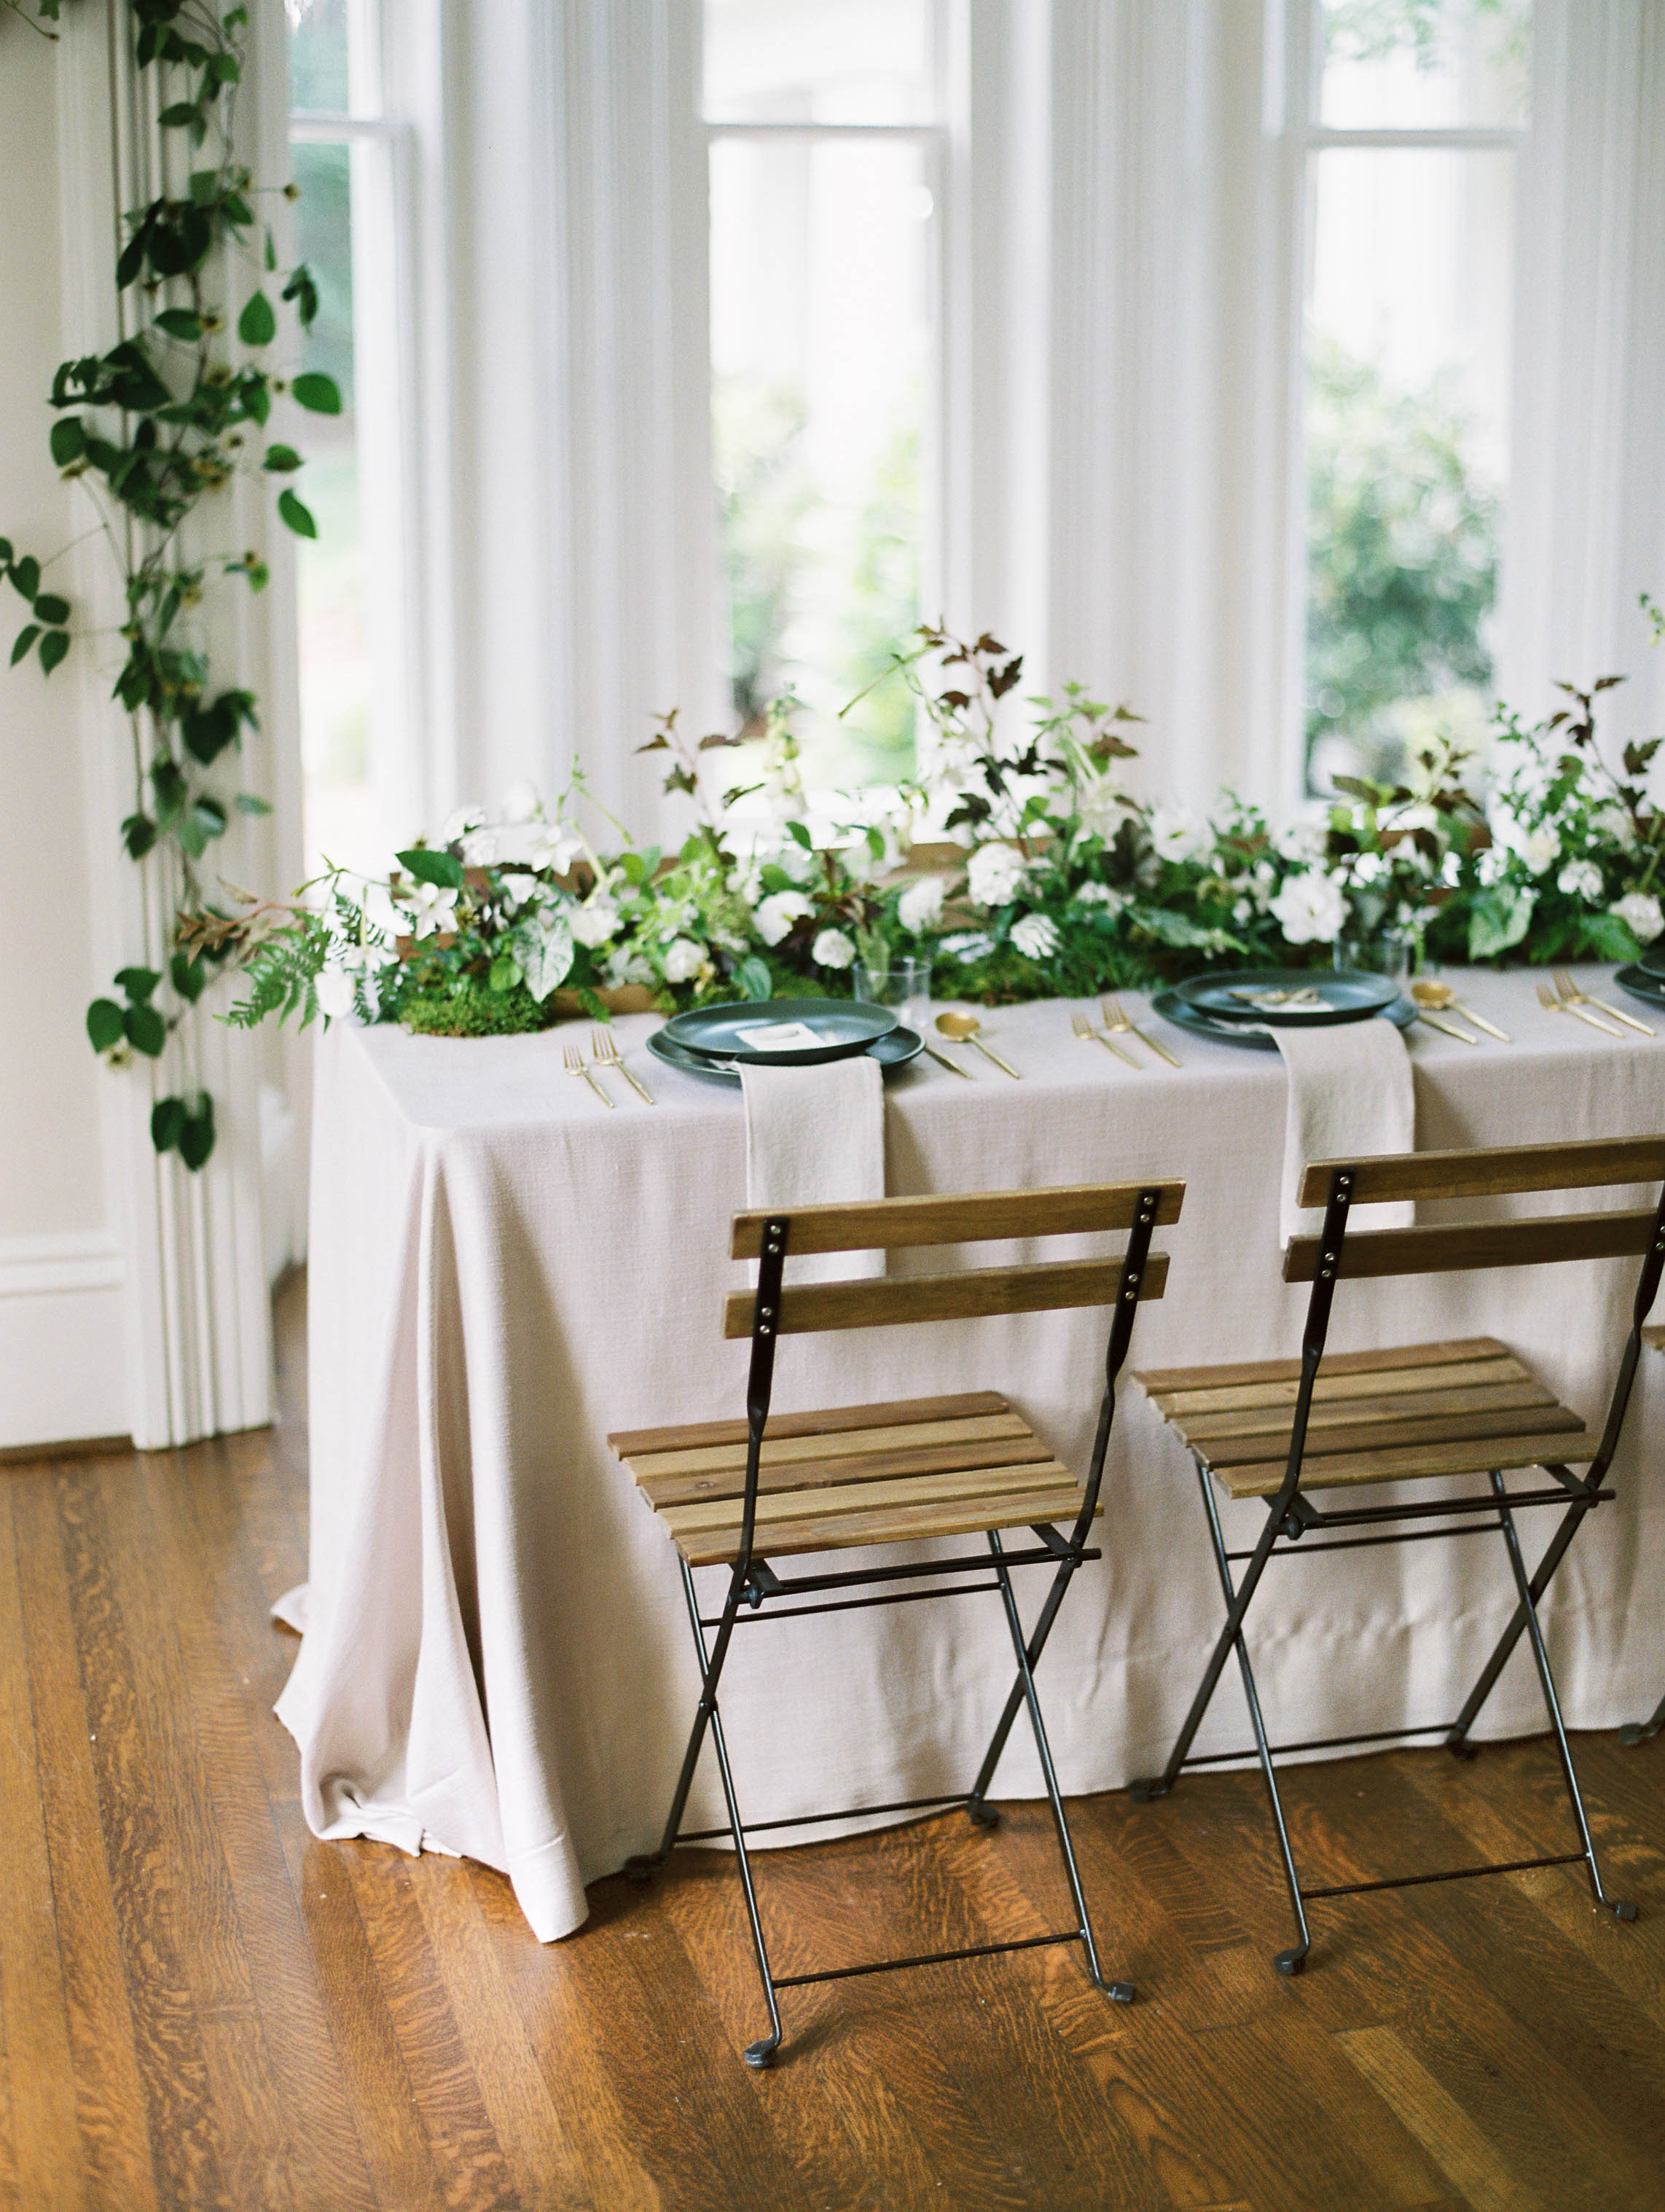 Modern botanical tablescabe with floral table runner